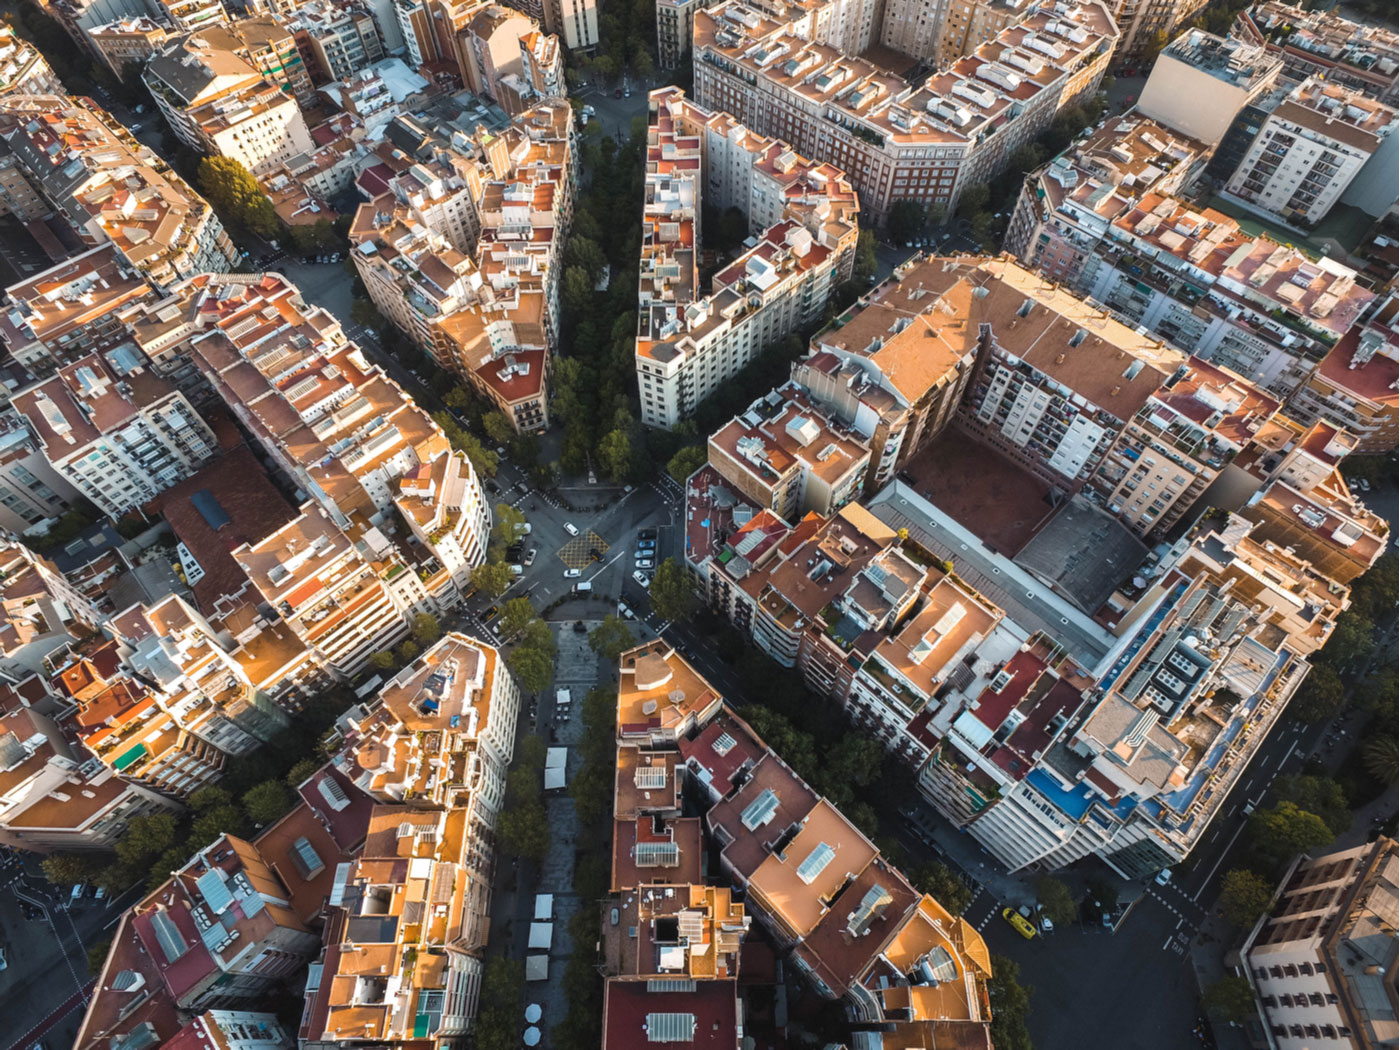 City Grid der Stadt Barcelona